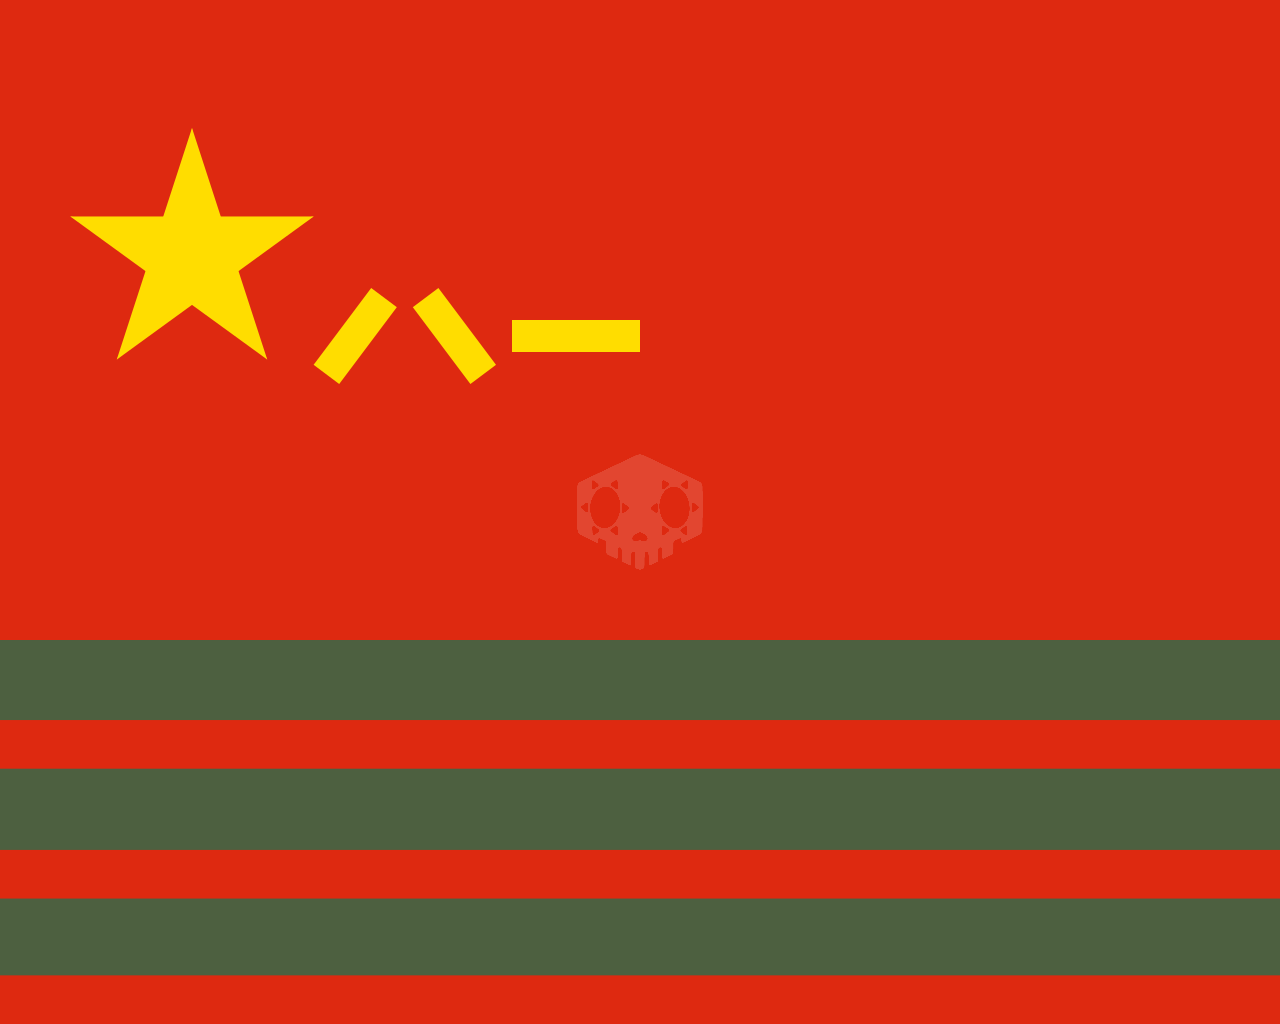 파일:People's_Armed_Police_Flag.png